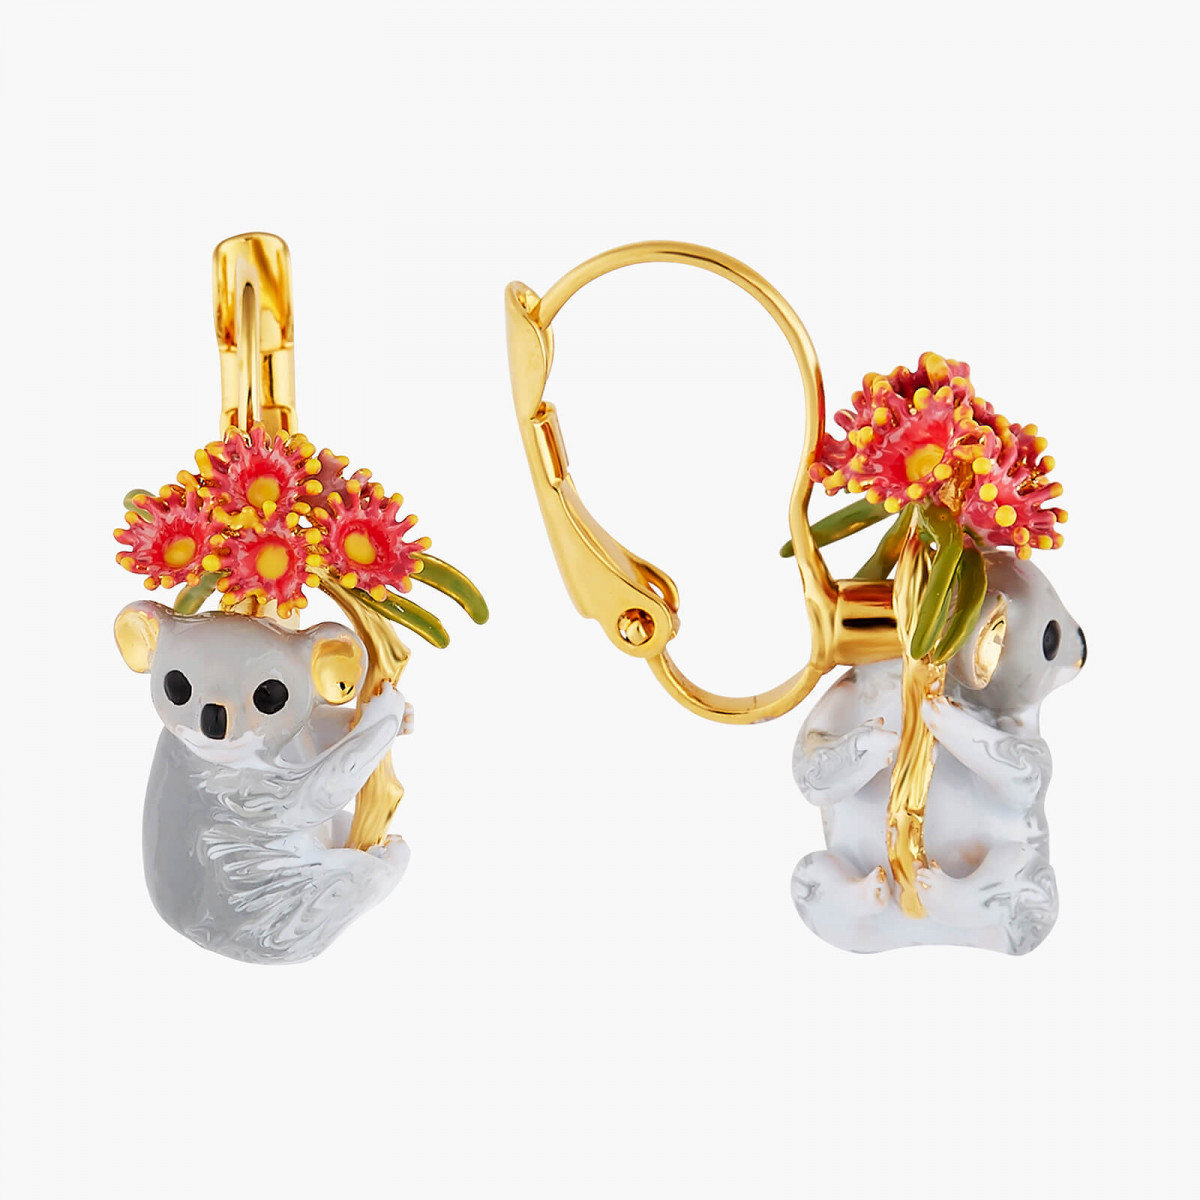 Squirrel, red berries and stream of chains earrings